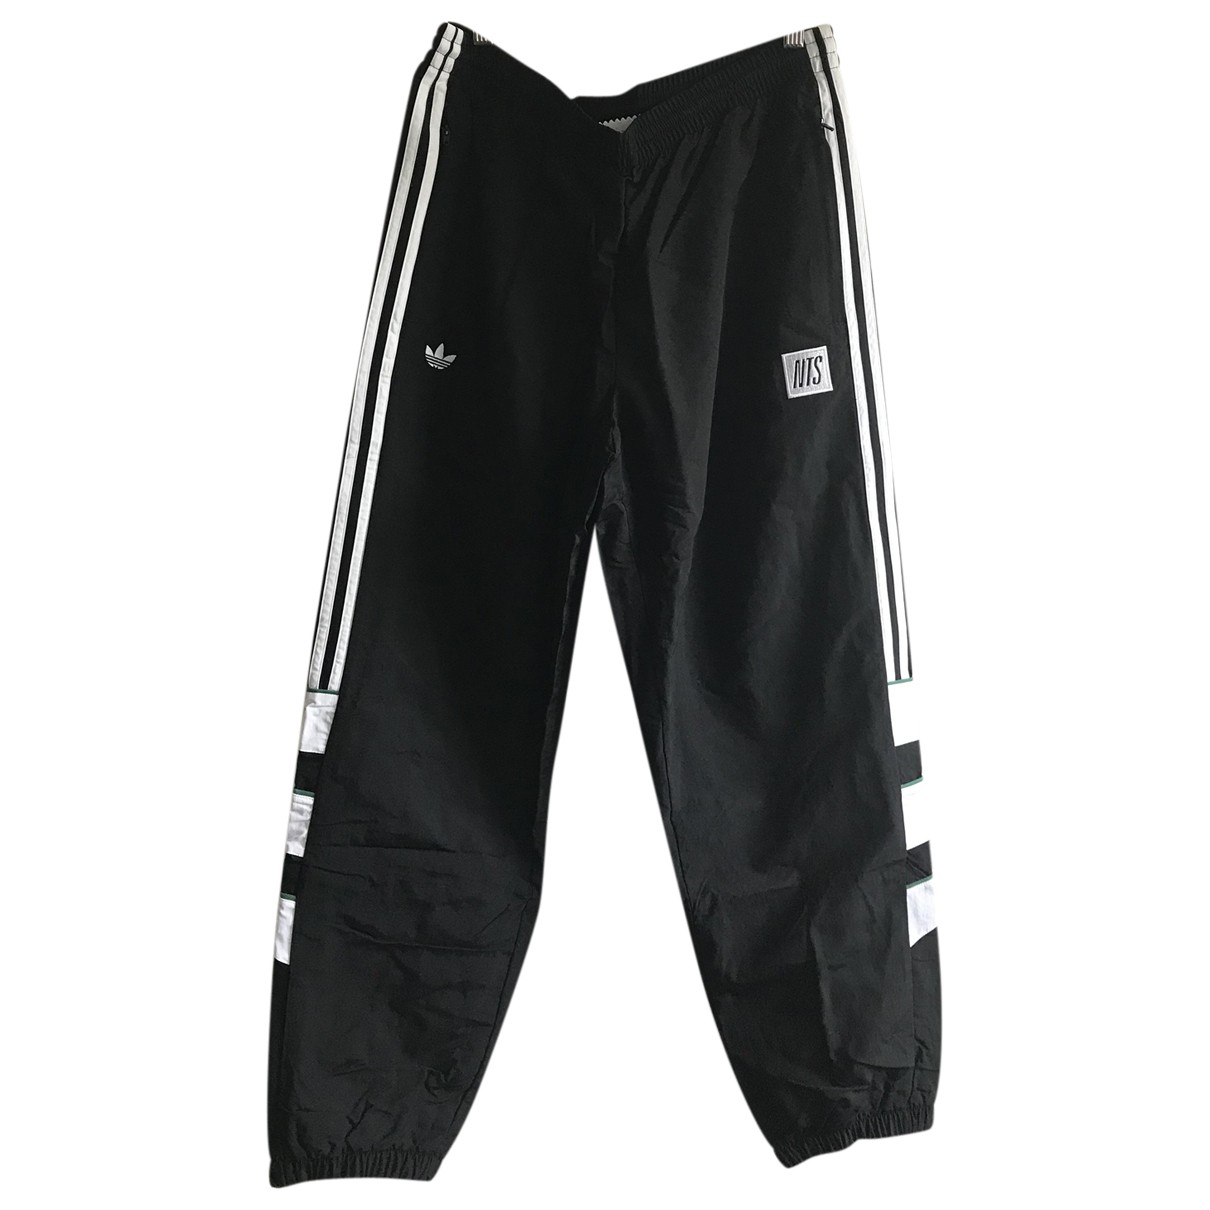 Adidas \N Black Trousers for Men L International